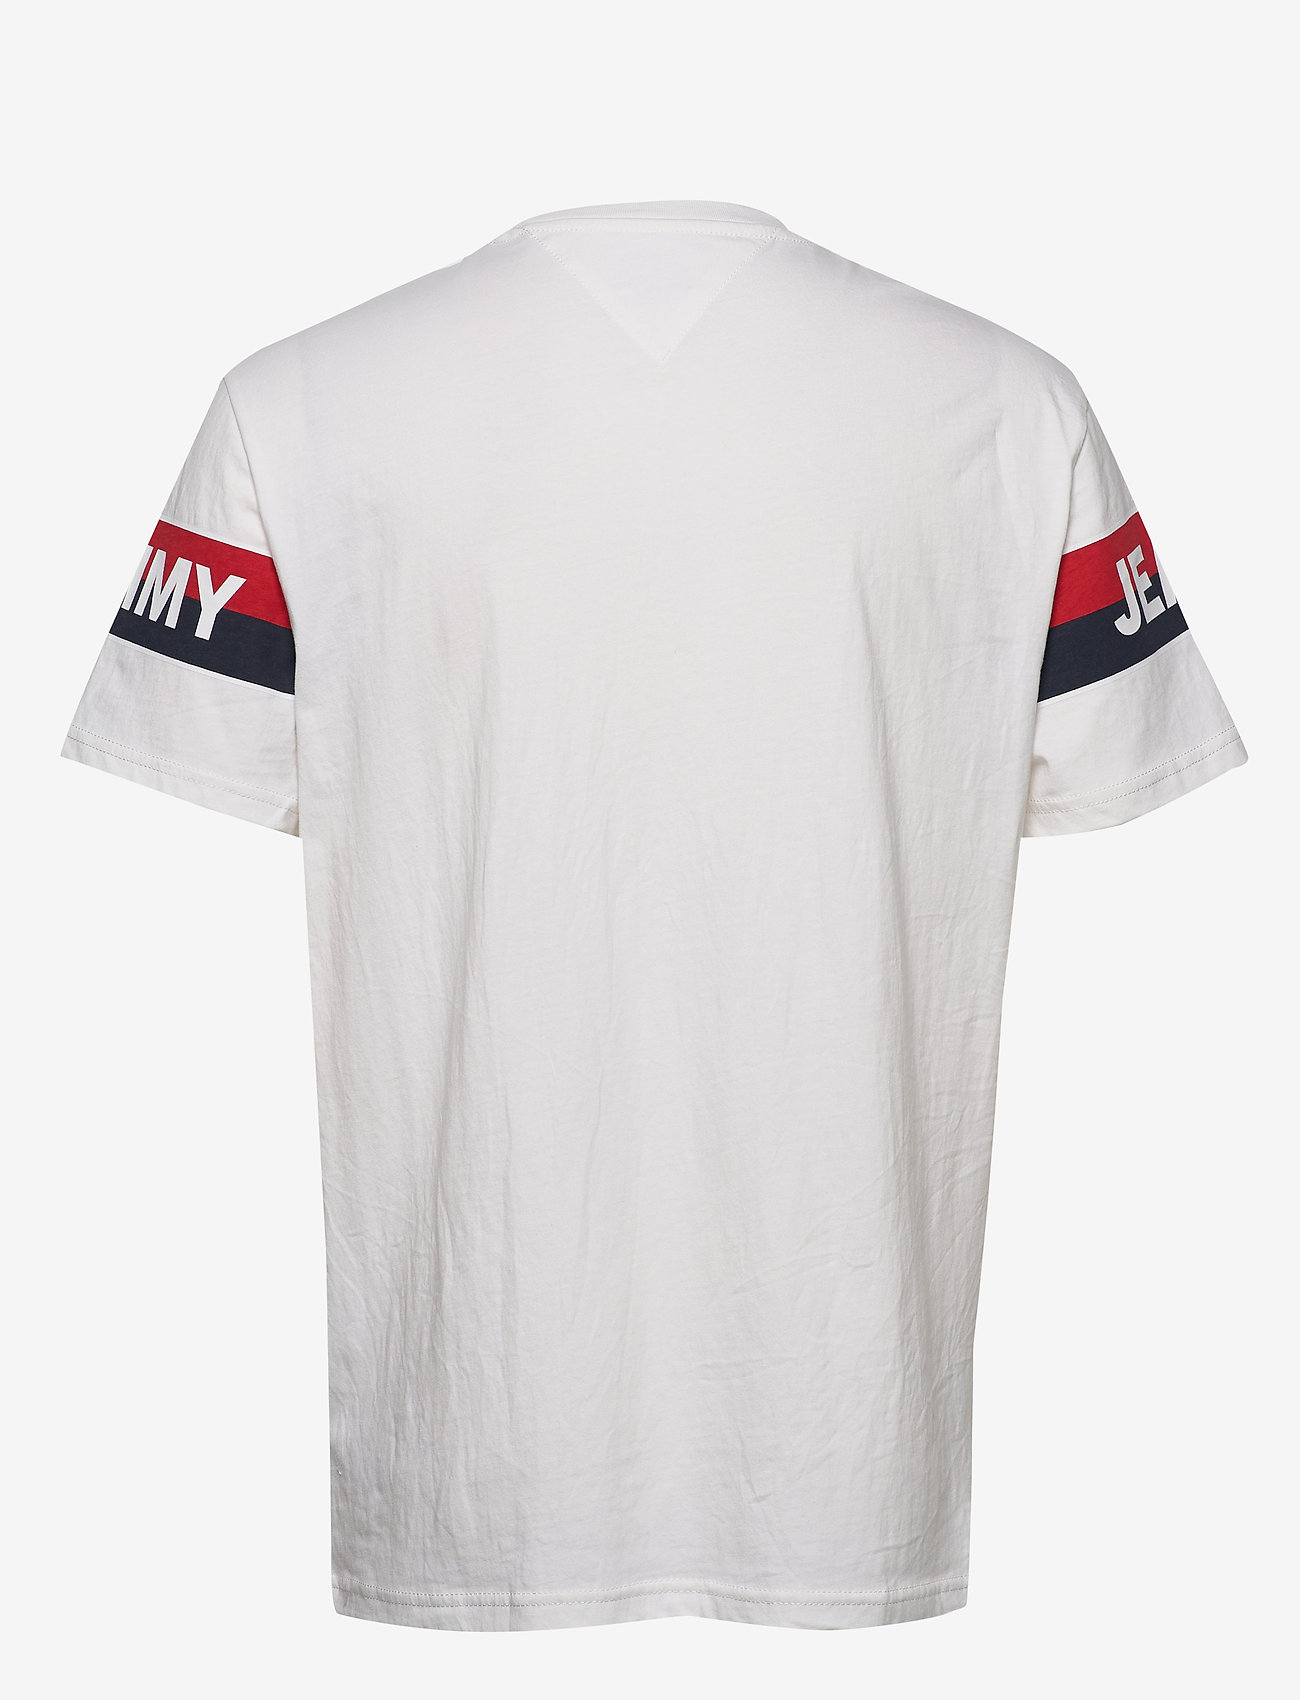 Tommy Jeans - TJM DOUBLE STRIPE LO - short-sleeved t-shirts - white - 1